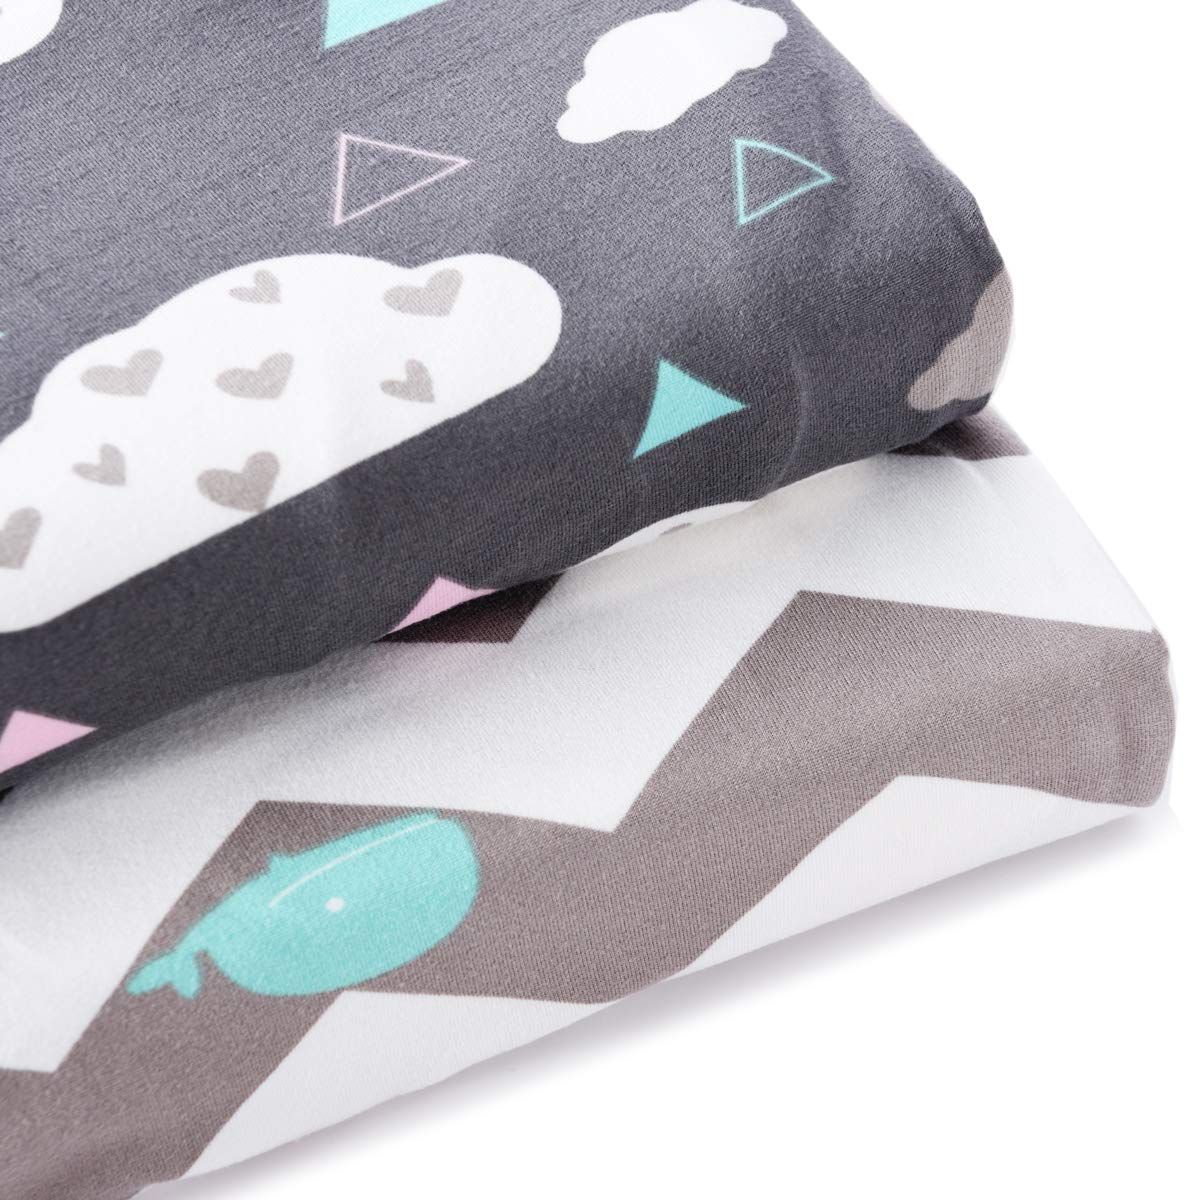 2 Pack Stretchy Crib Sheets for Boys Girls,Universal Knit Fitted for Standard Baby Toddler Crib,Whale//Cloud COSMOPLUS Knitted Crib Sheet Set